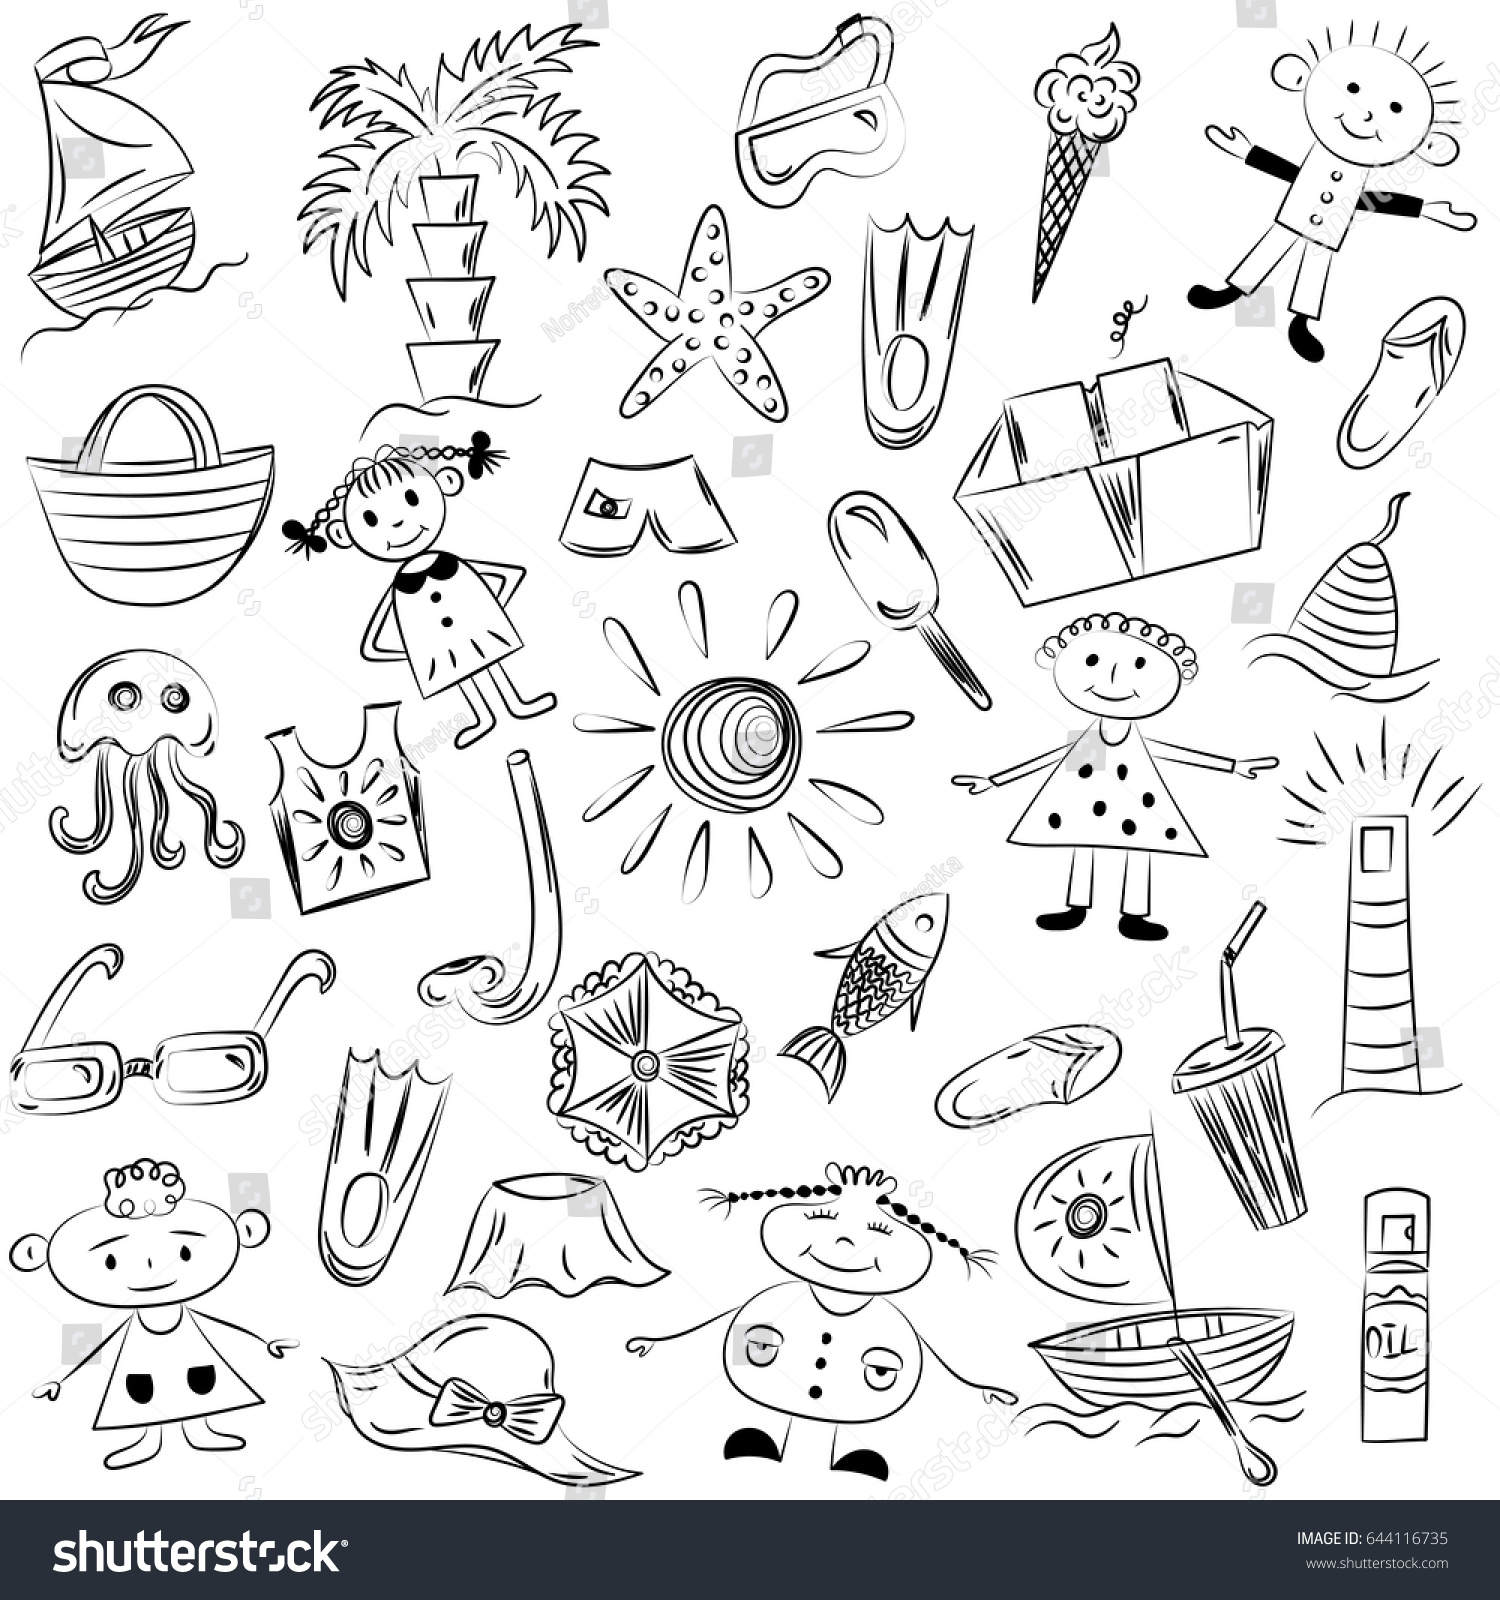 Uncategorized Drawings Of Summer hand drawings summer vacancies symbols doodle stock vector of boats ice cream palms hat